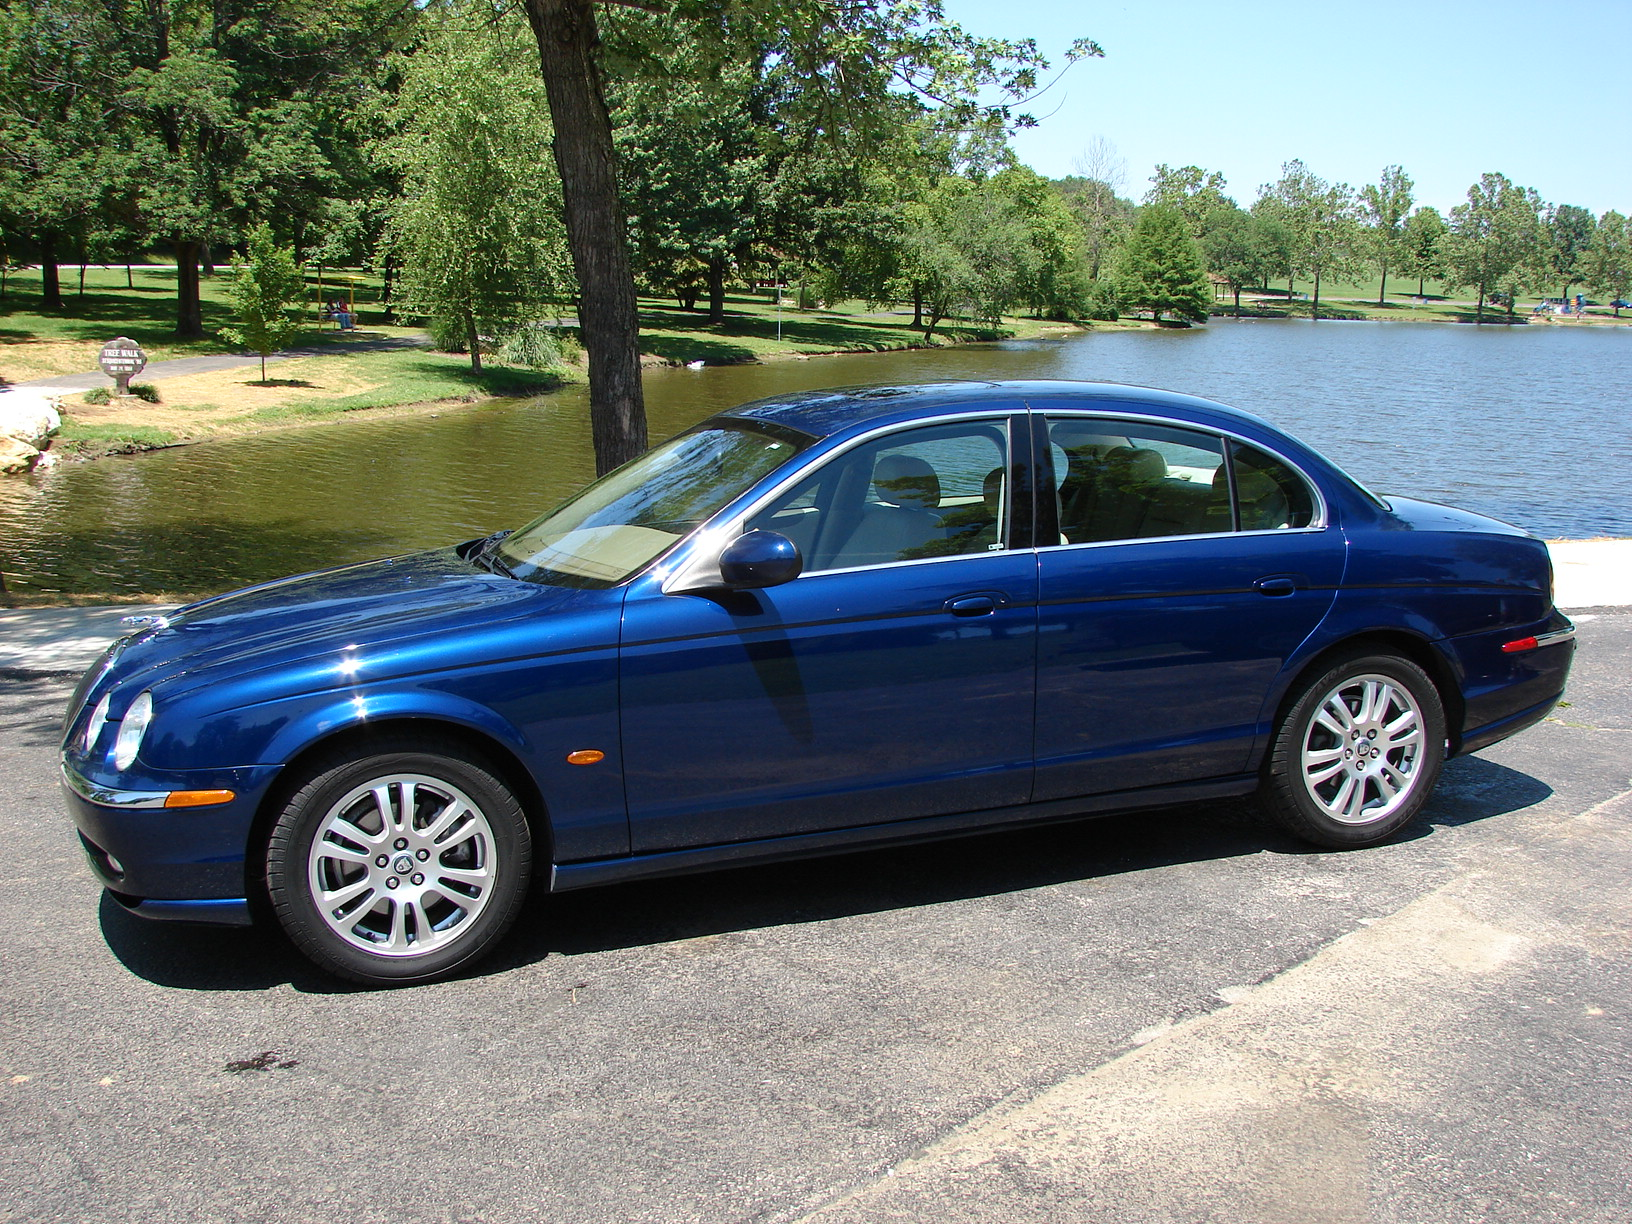 JAGUAR S-TYPE blue